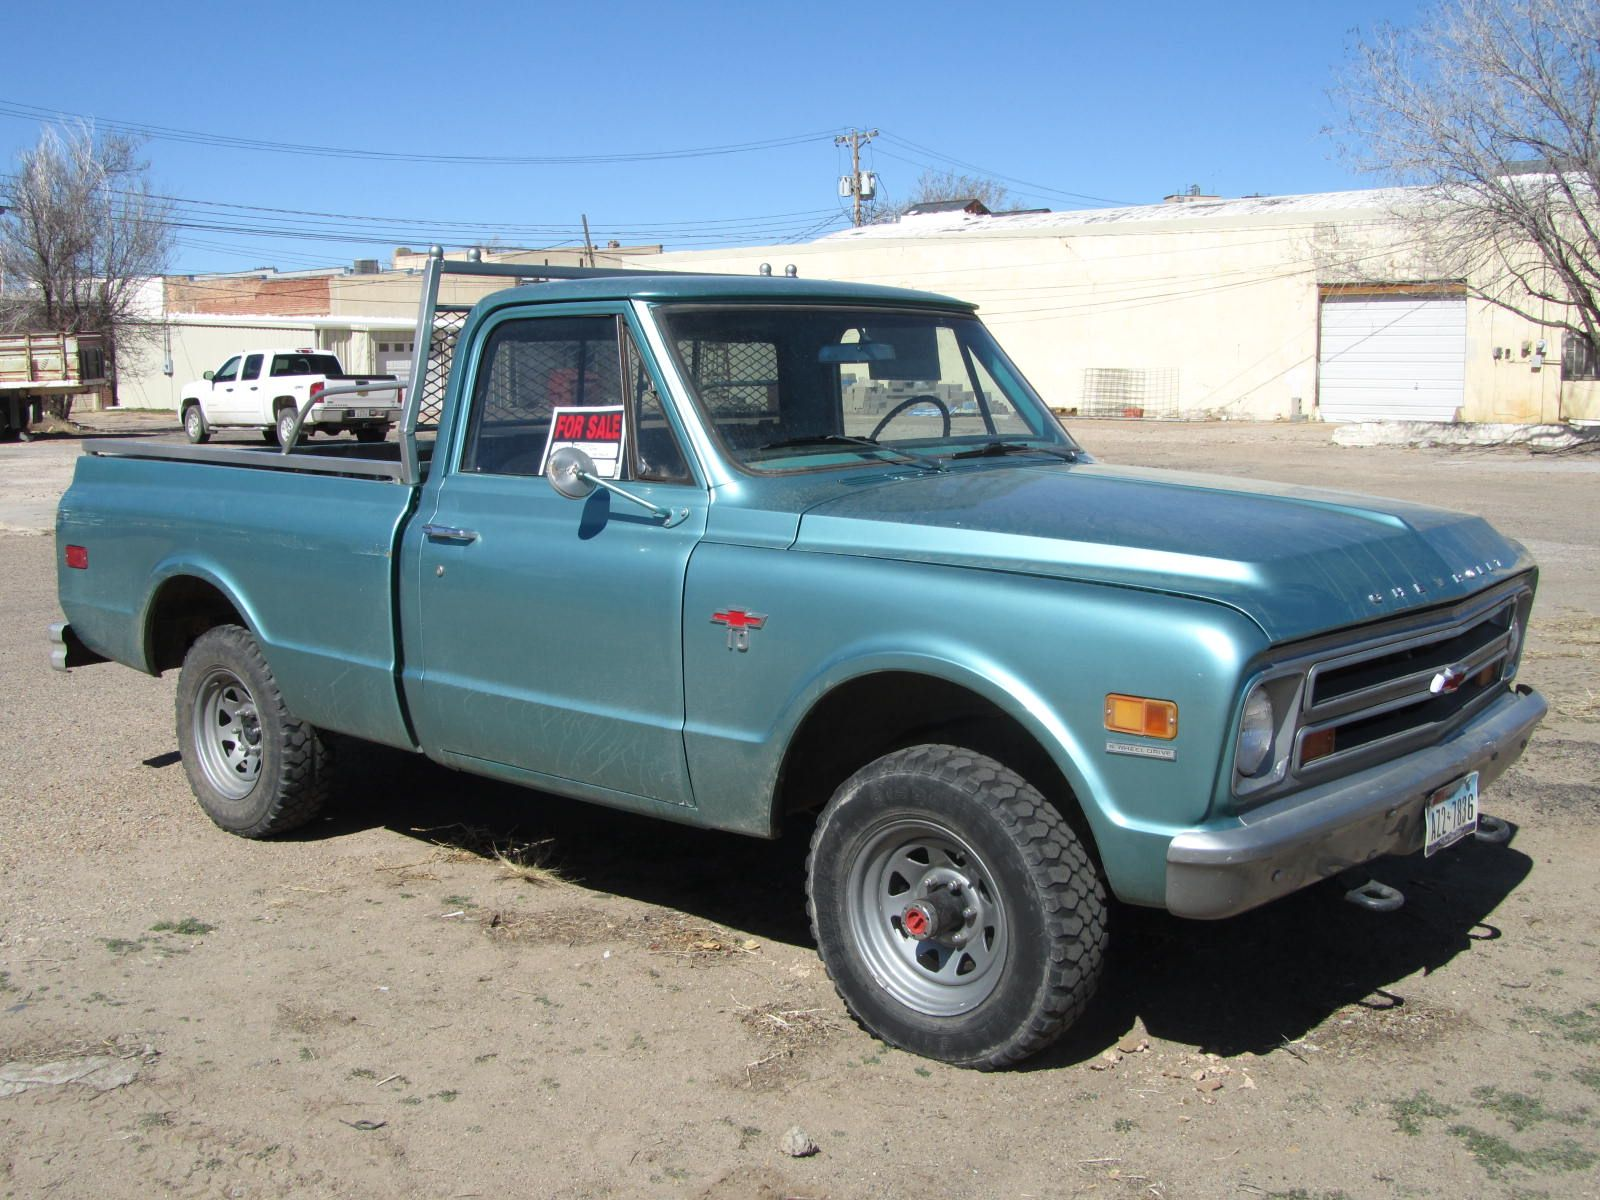 1968 Chevy Lifted C10 Pickups Autoliterate Chevrolet Truck 1600x1200